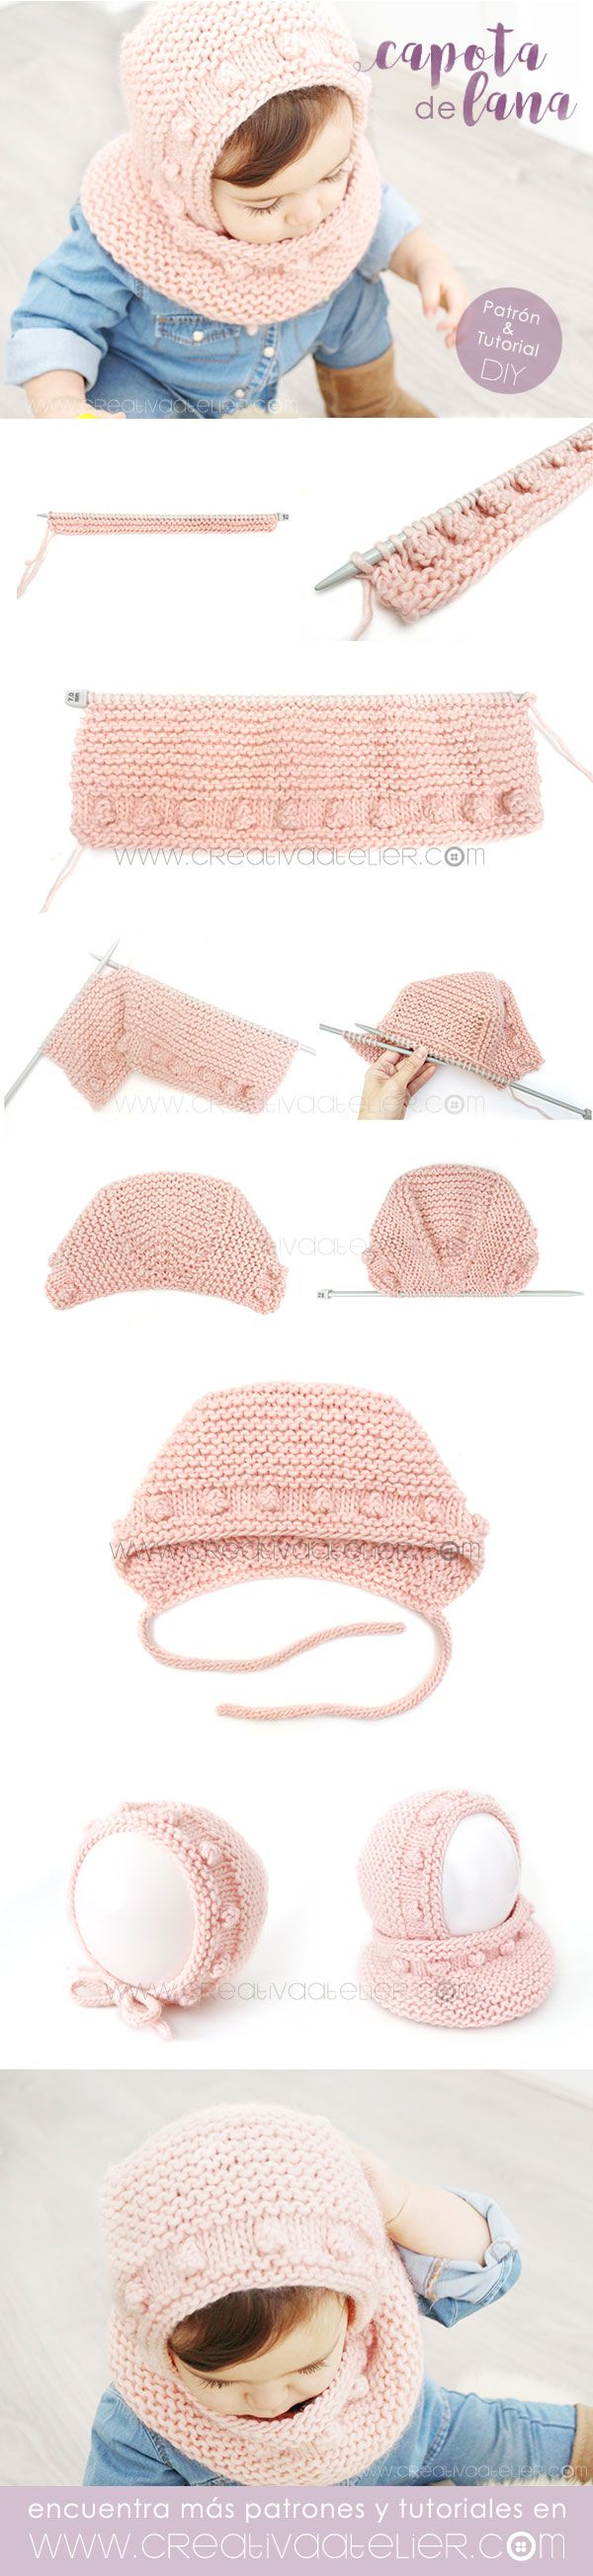 412 best gorros images on Pinterest | Crochet hats, Crochet granny ...